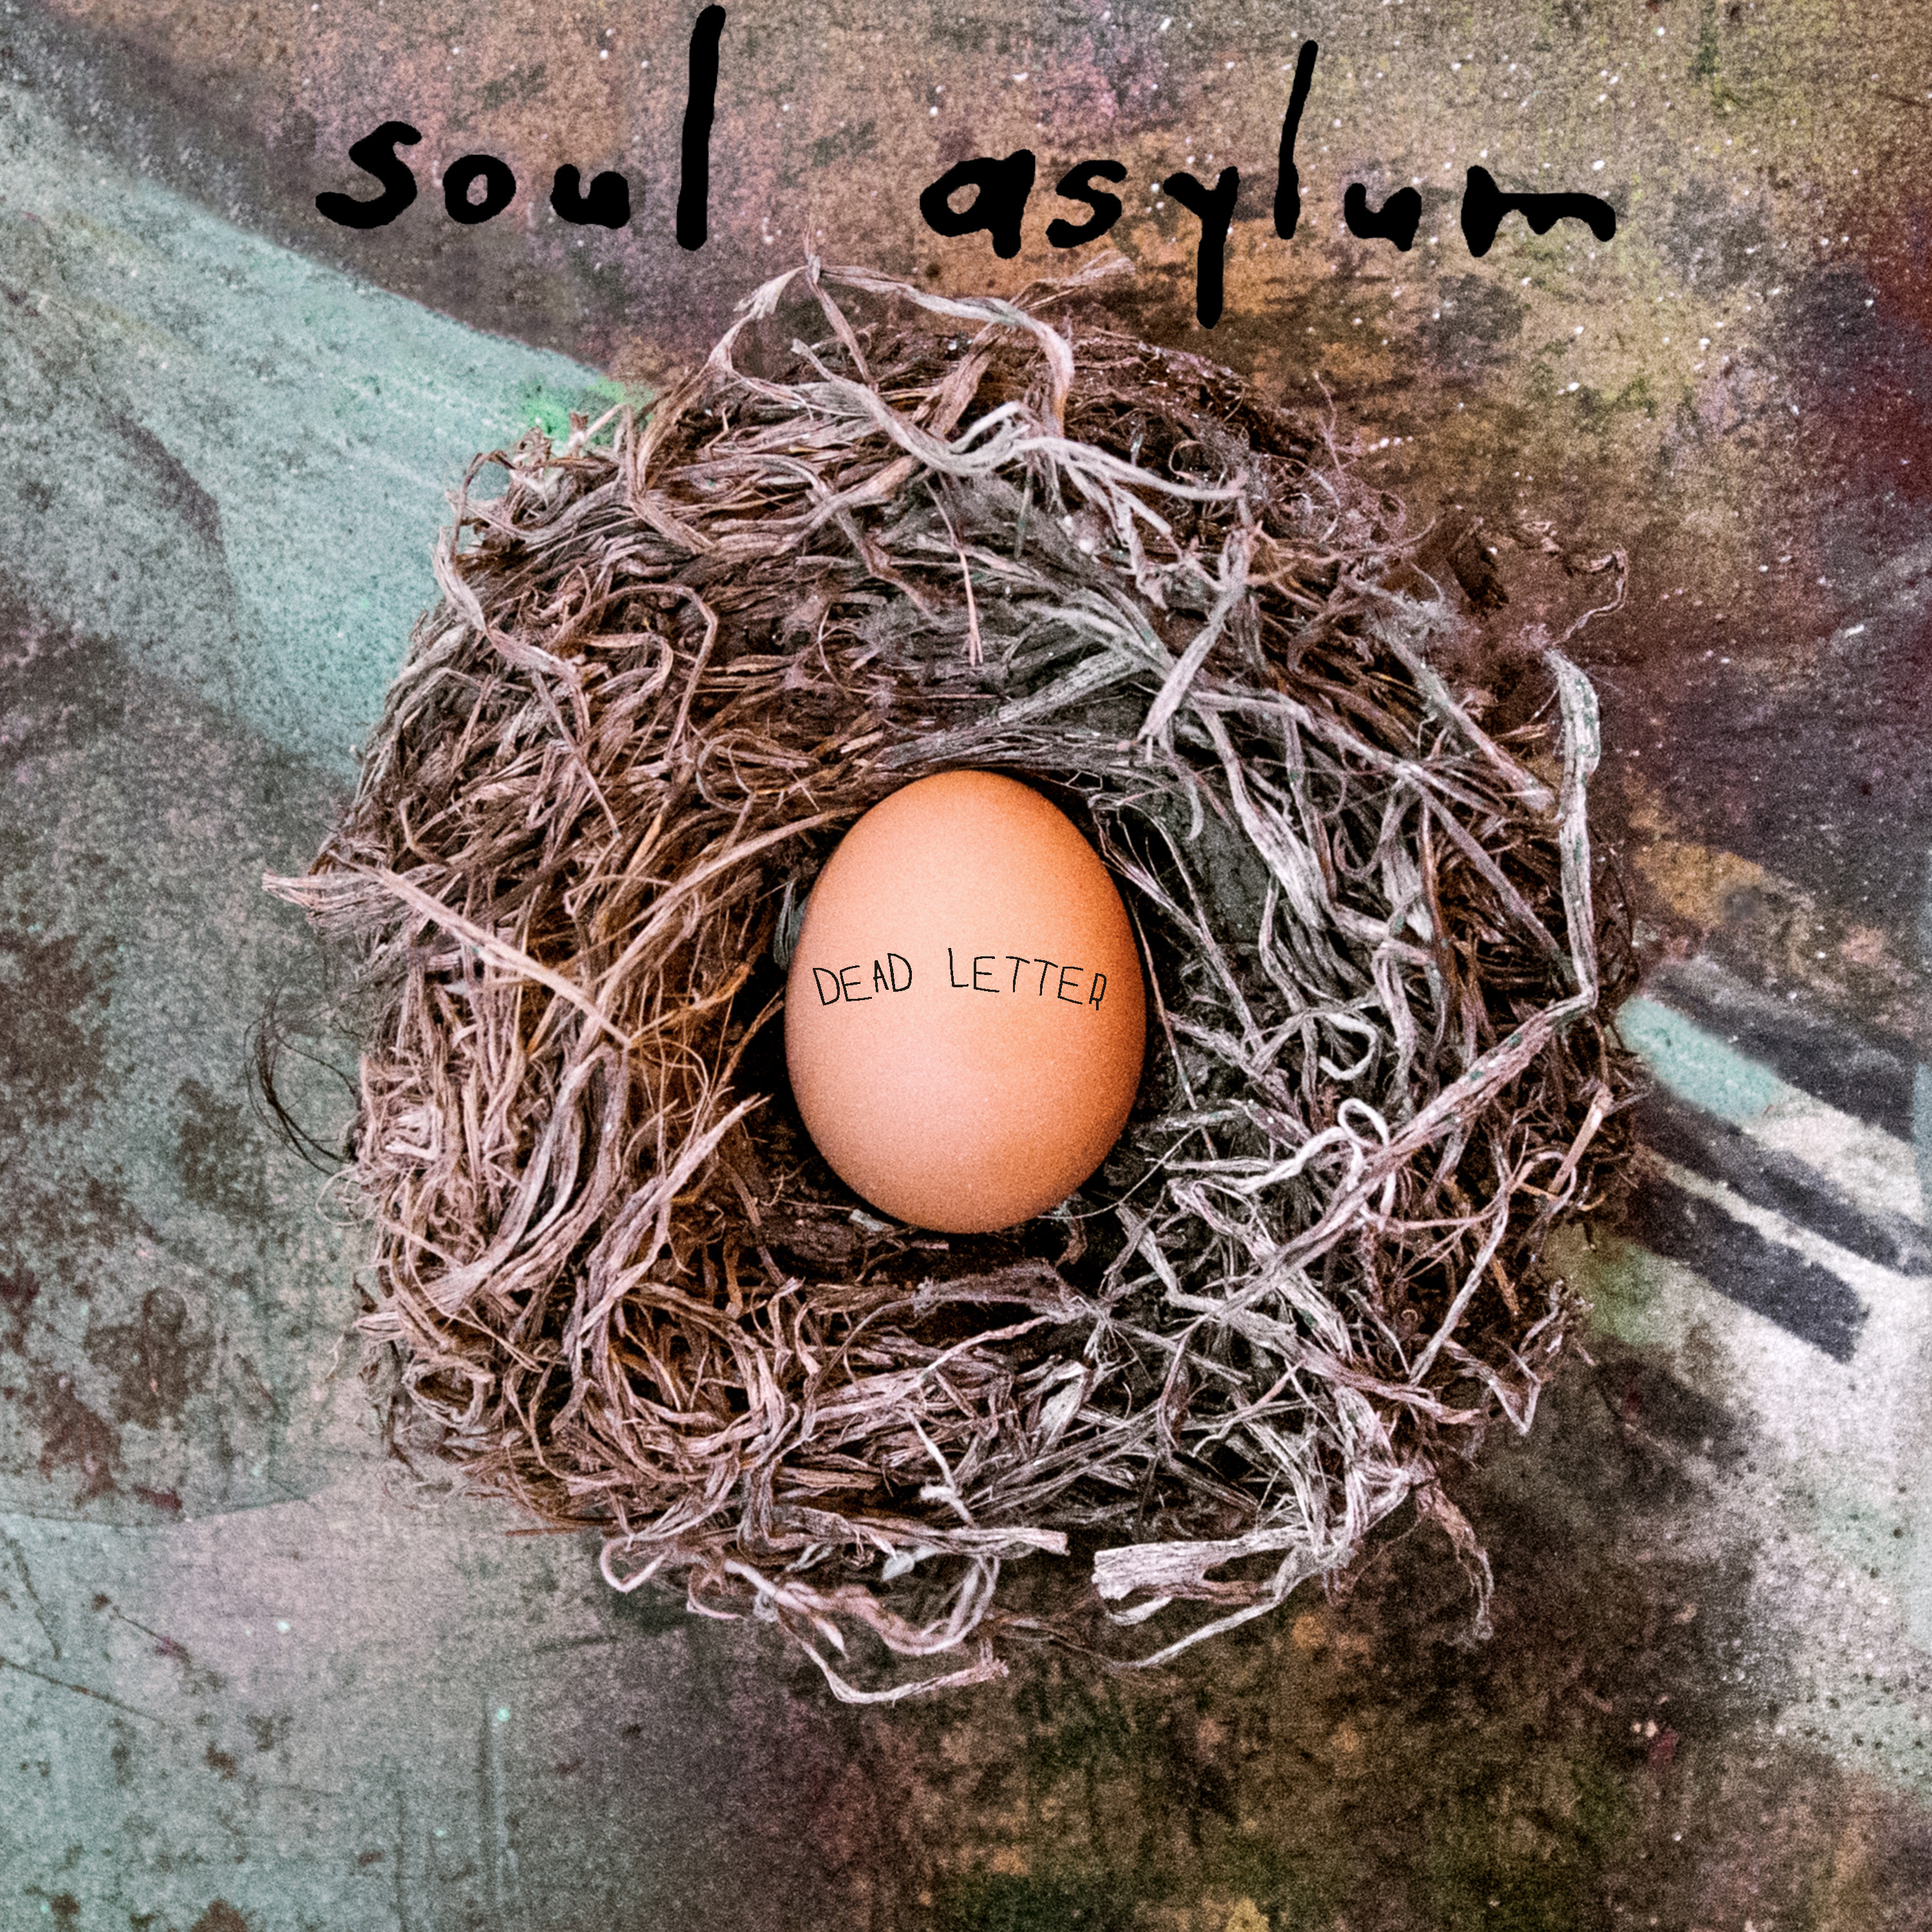 Soul Asylum Releases New Music + Tour